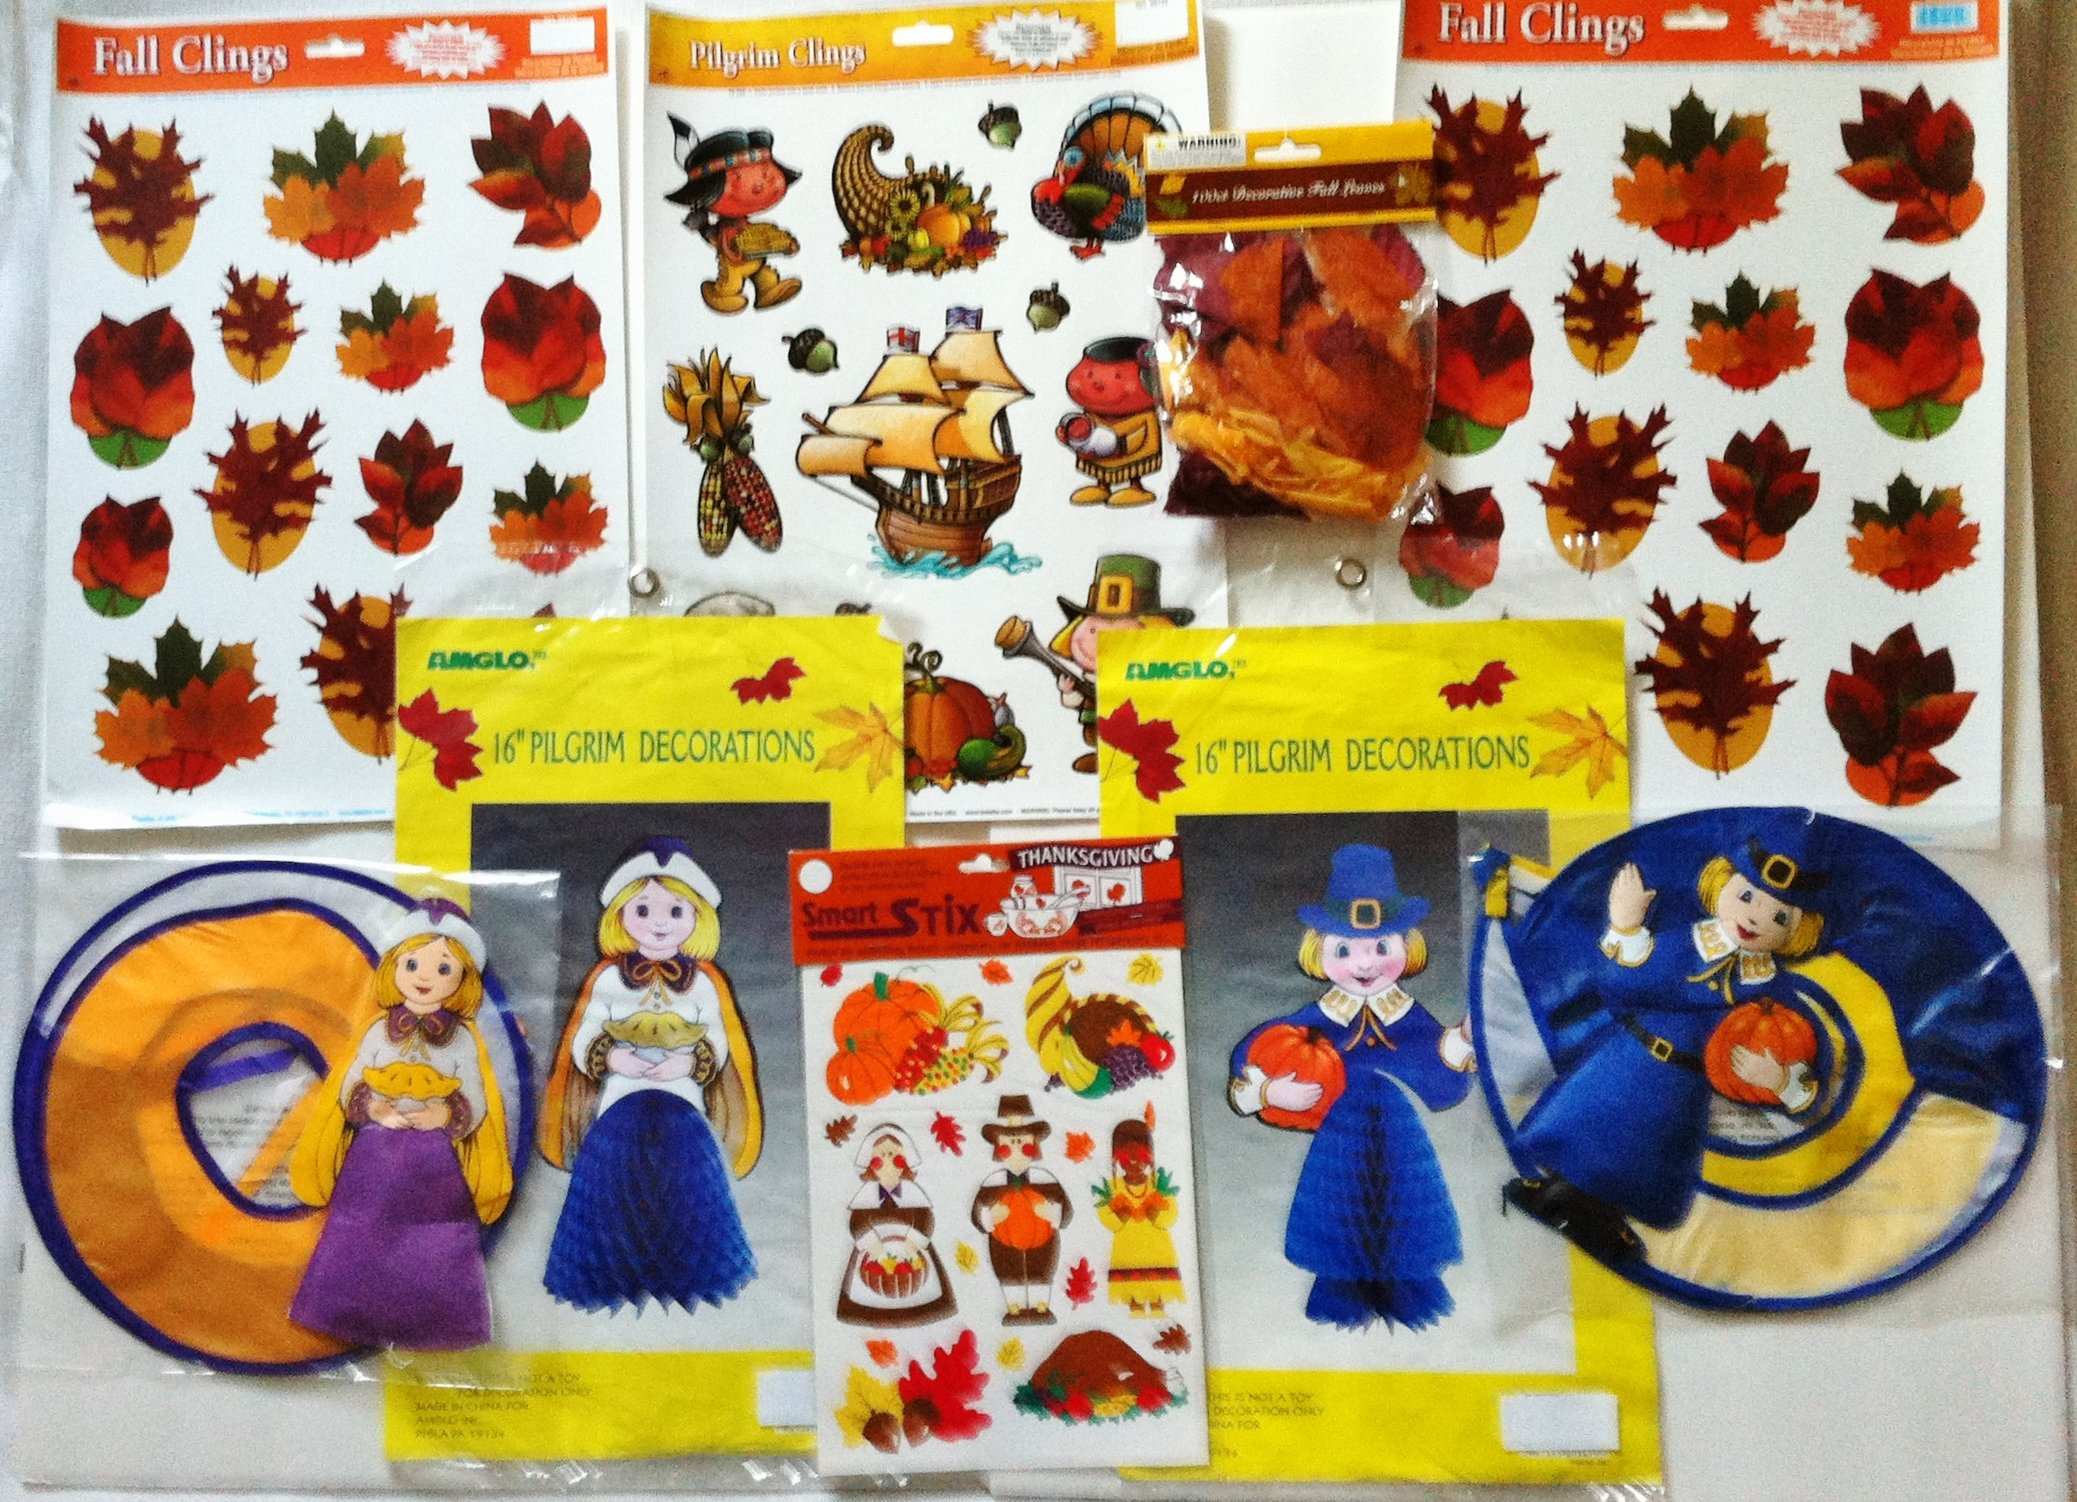 Bundle of 9 Thanksgiving Decorations: 4 Window Clings, 2 Pilgrim Honeycombs, 2 Wind Spirals, 1 Bag of Fall Leaves